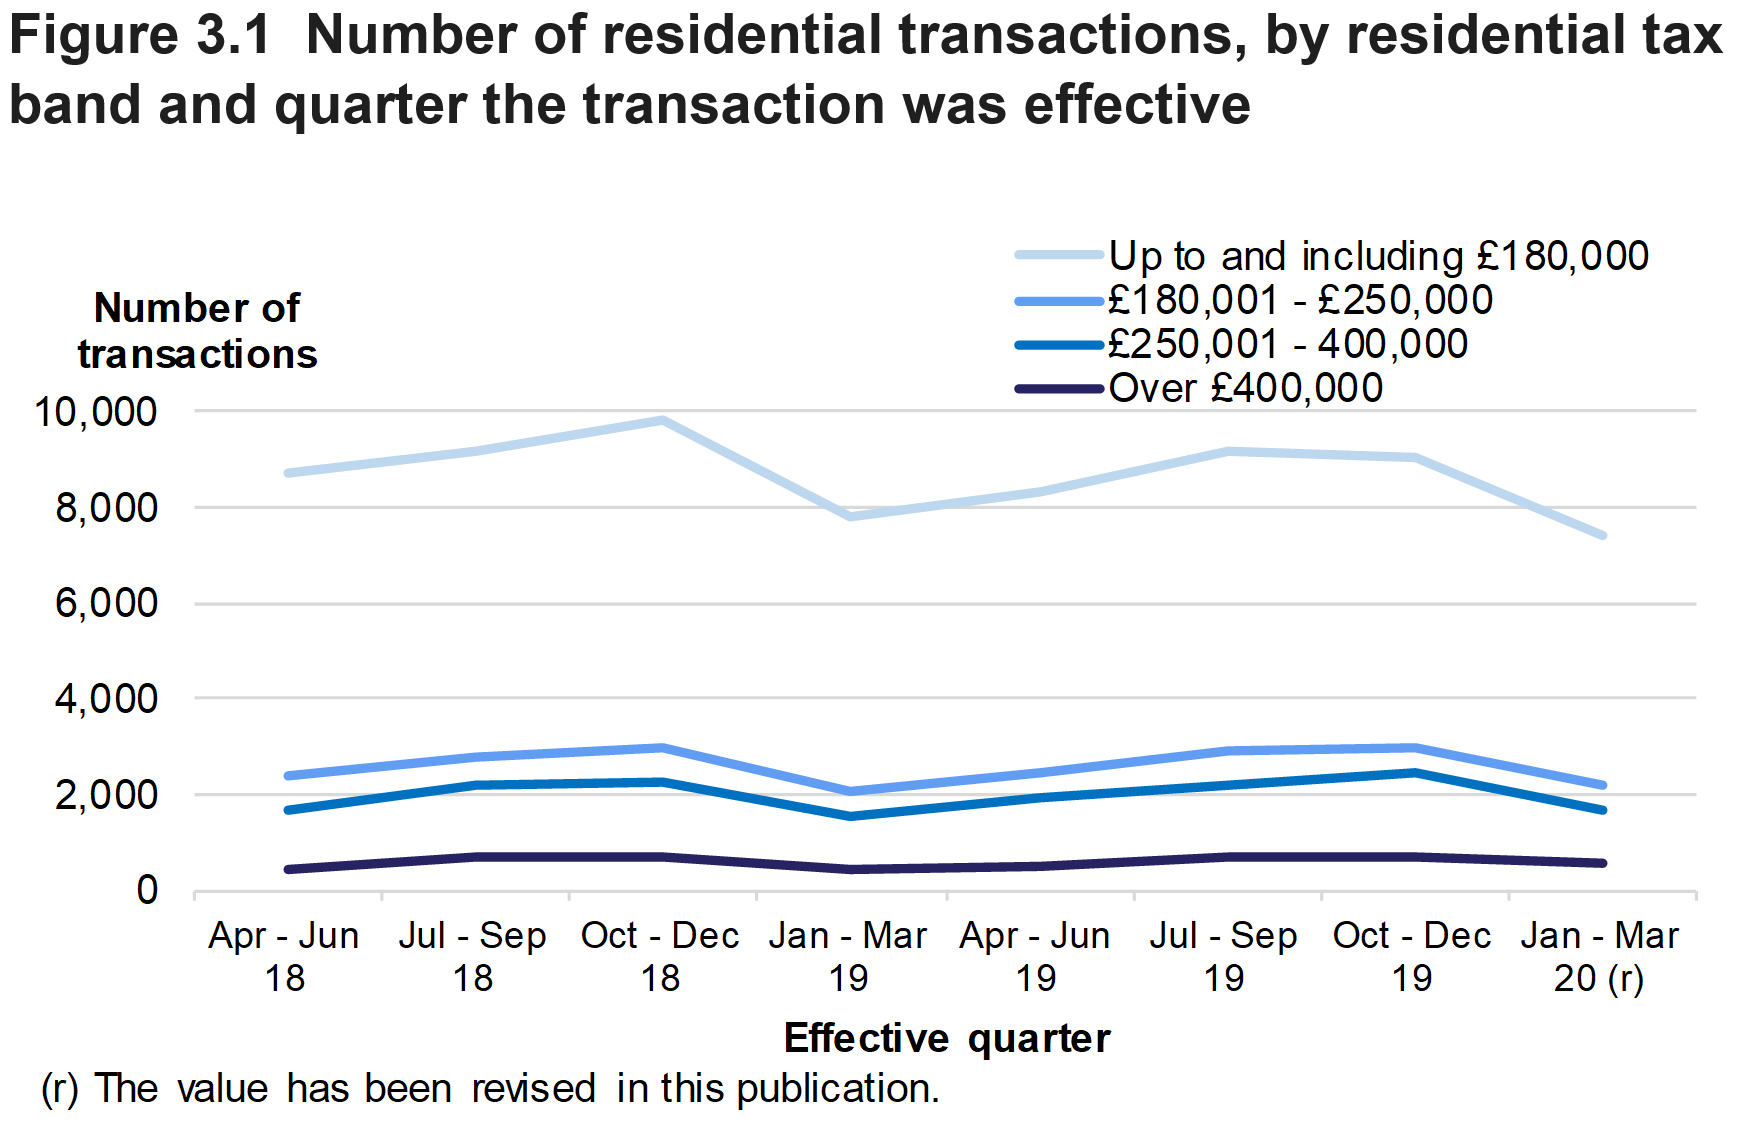 Figure 3.1 shows the number of residential transactions, by residential tax band and quarter the transaction was effective.